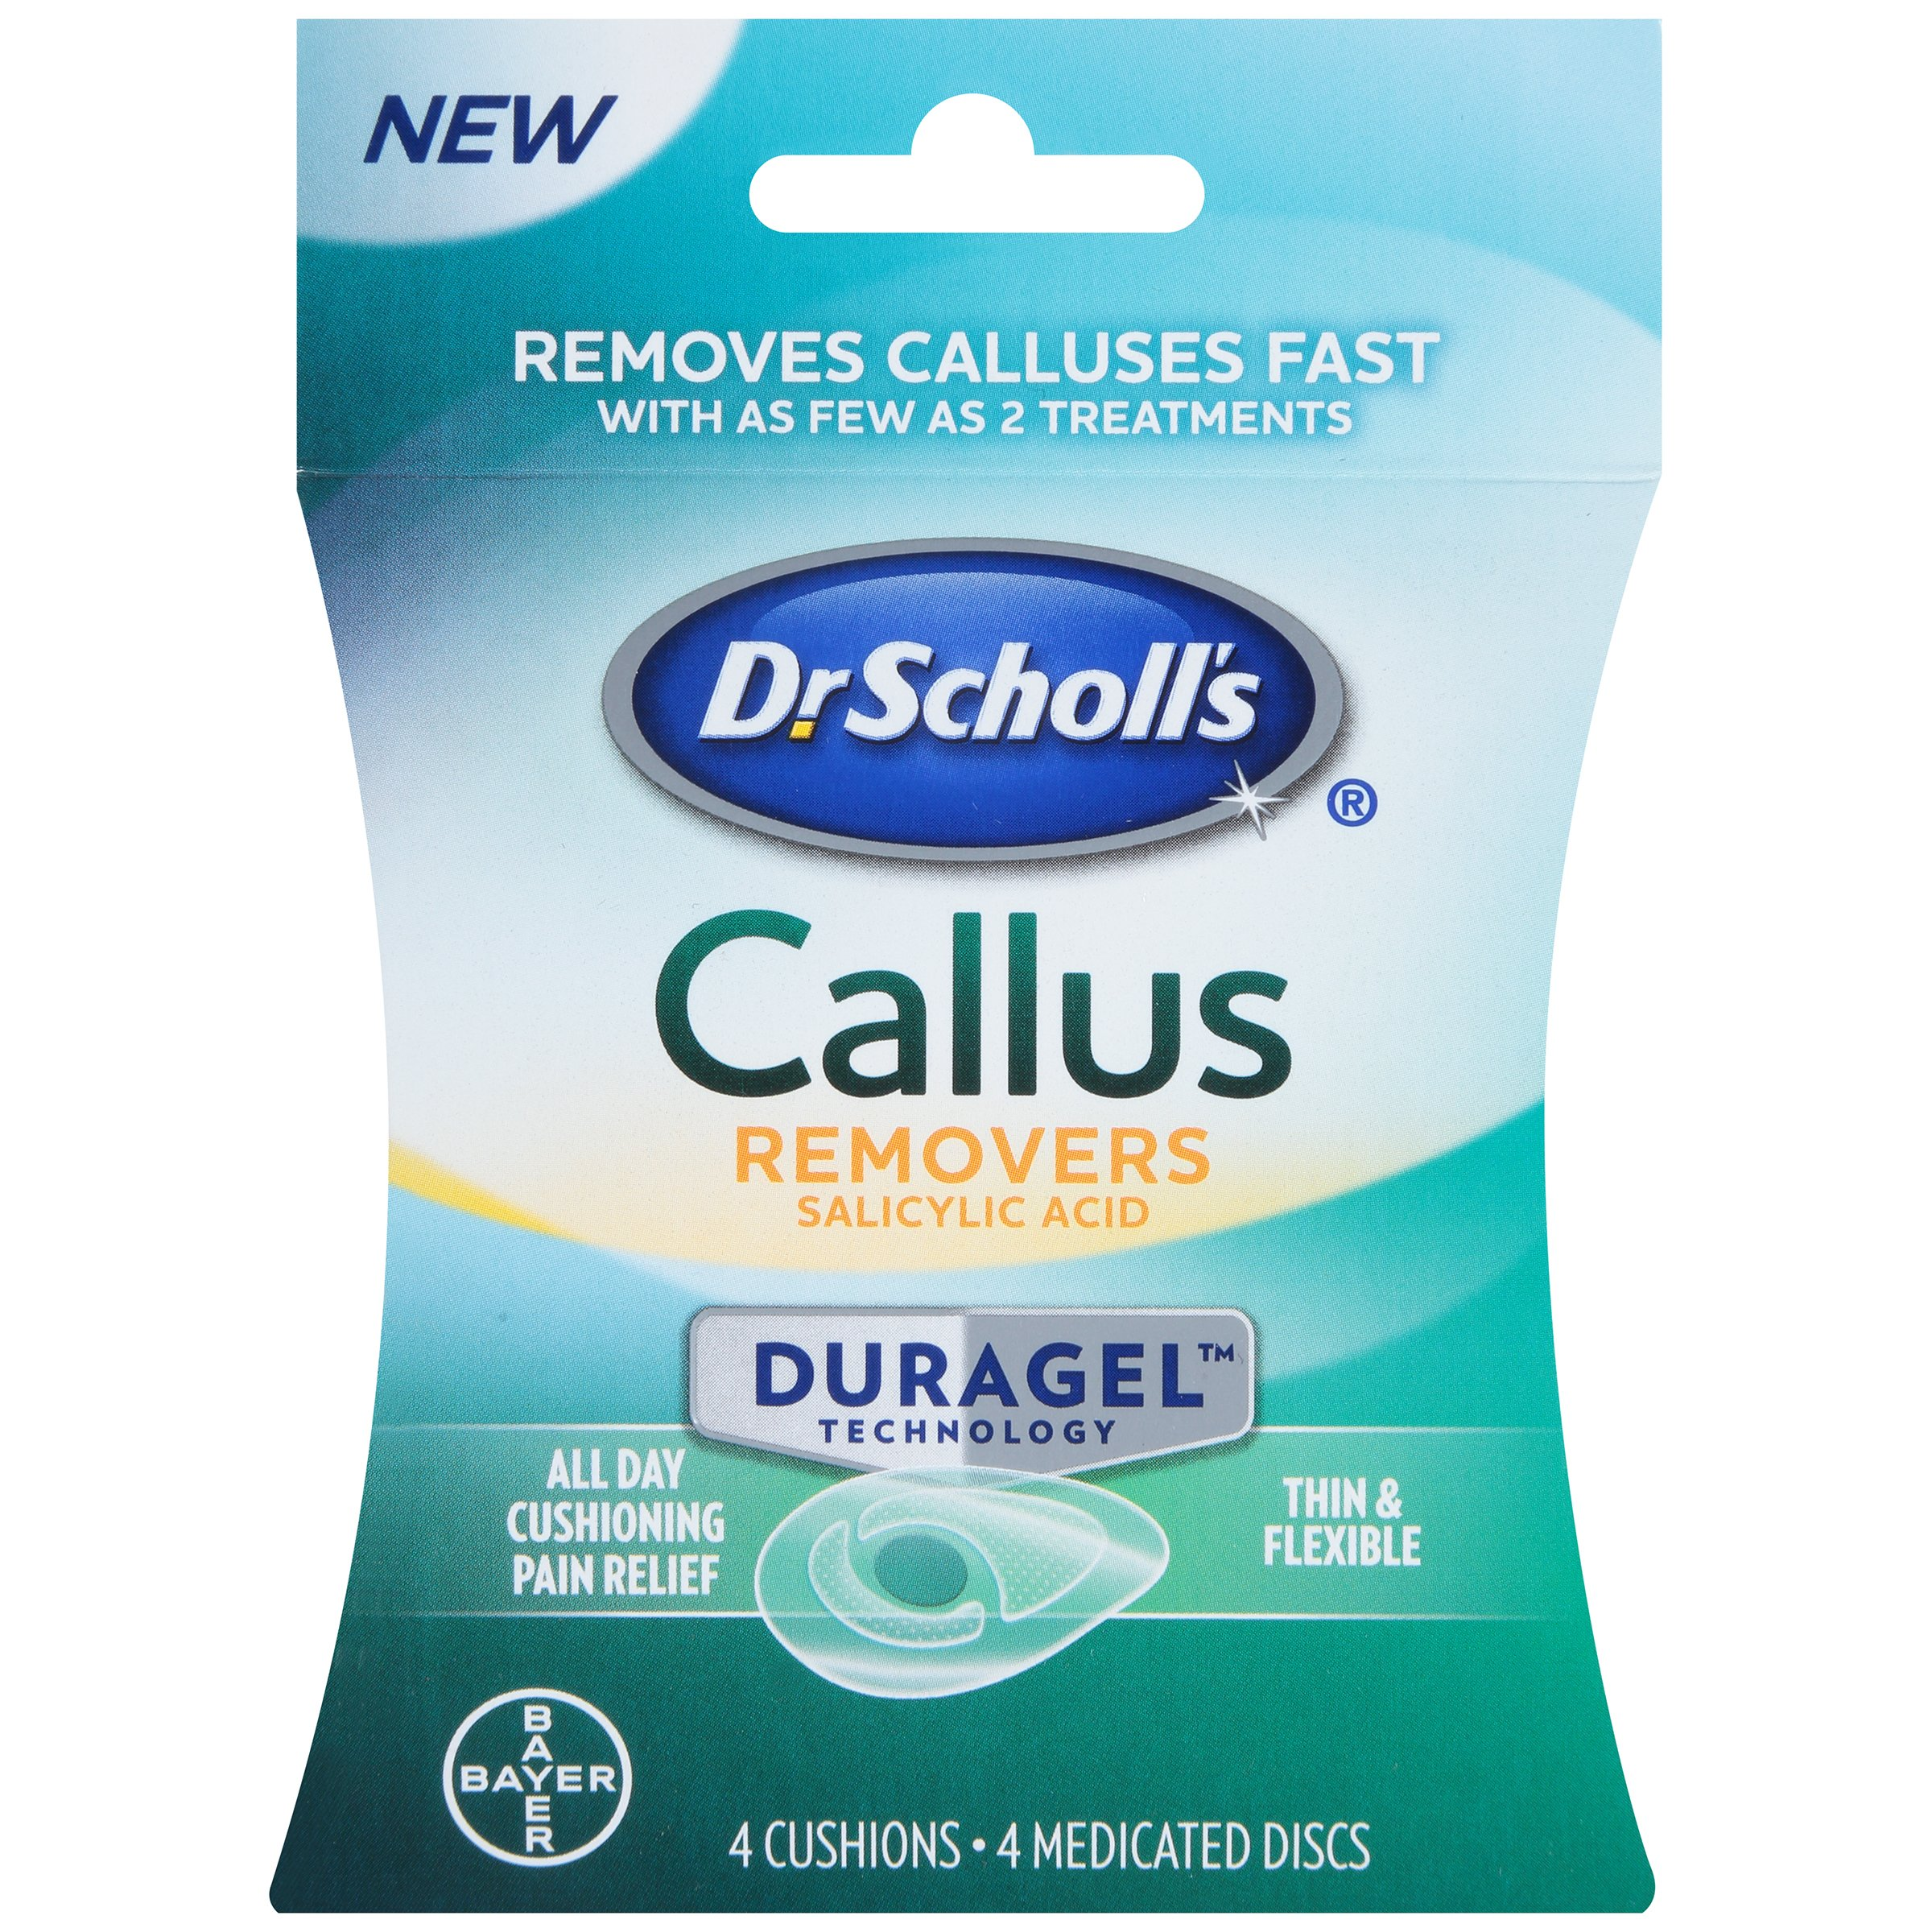 Dr. Scholl's CALLUS Removers with Duragel Technology, 4ct (One Size) // Removes Calluses Fast and Provides All-Day Cushioning Pain Relief